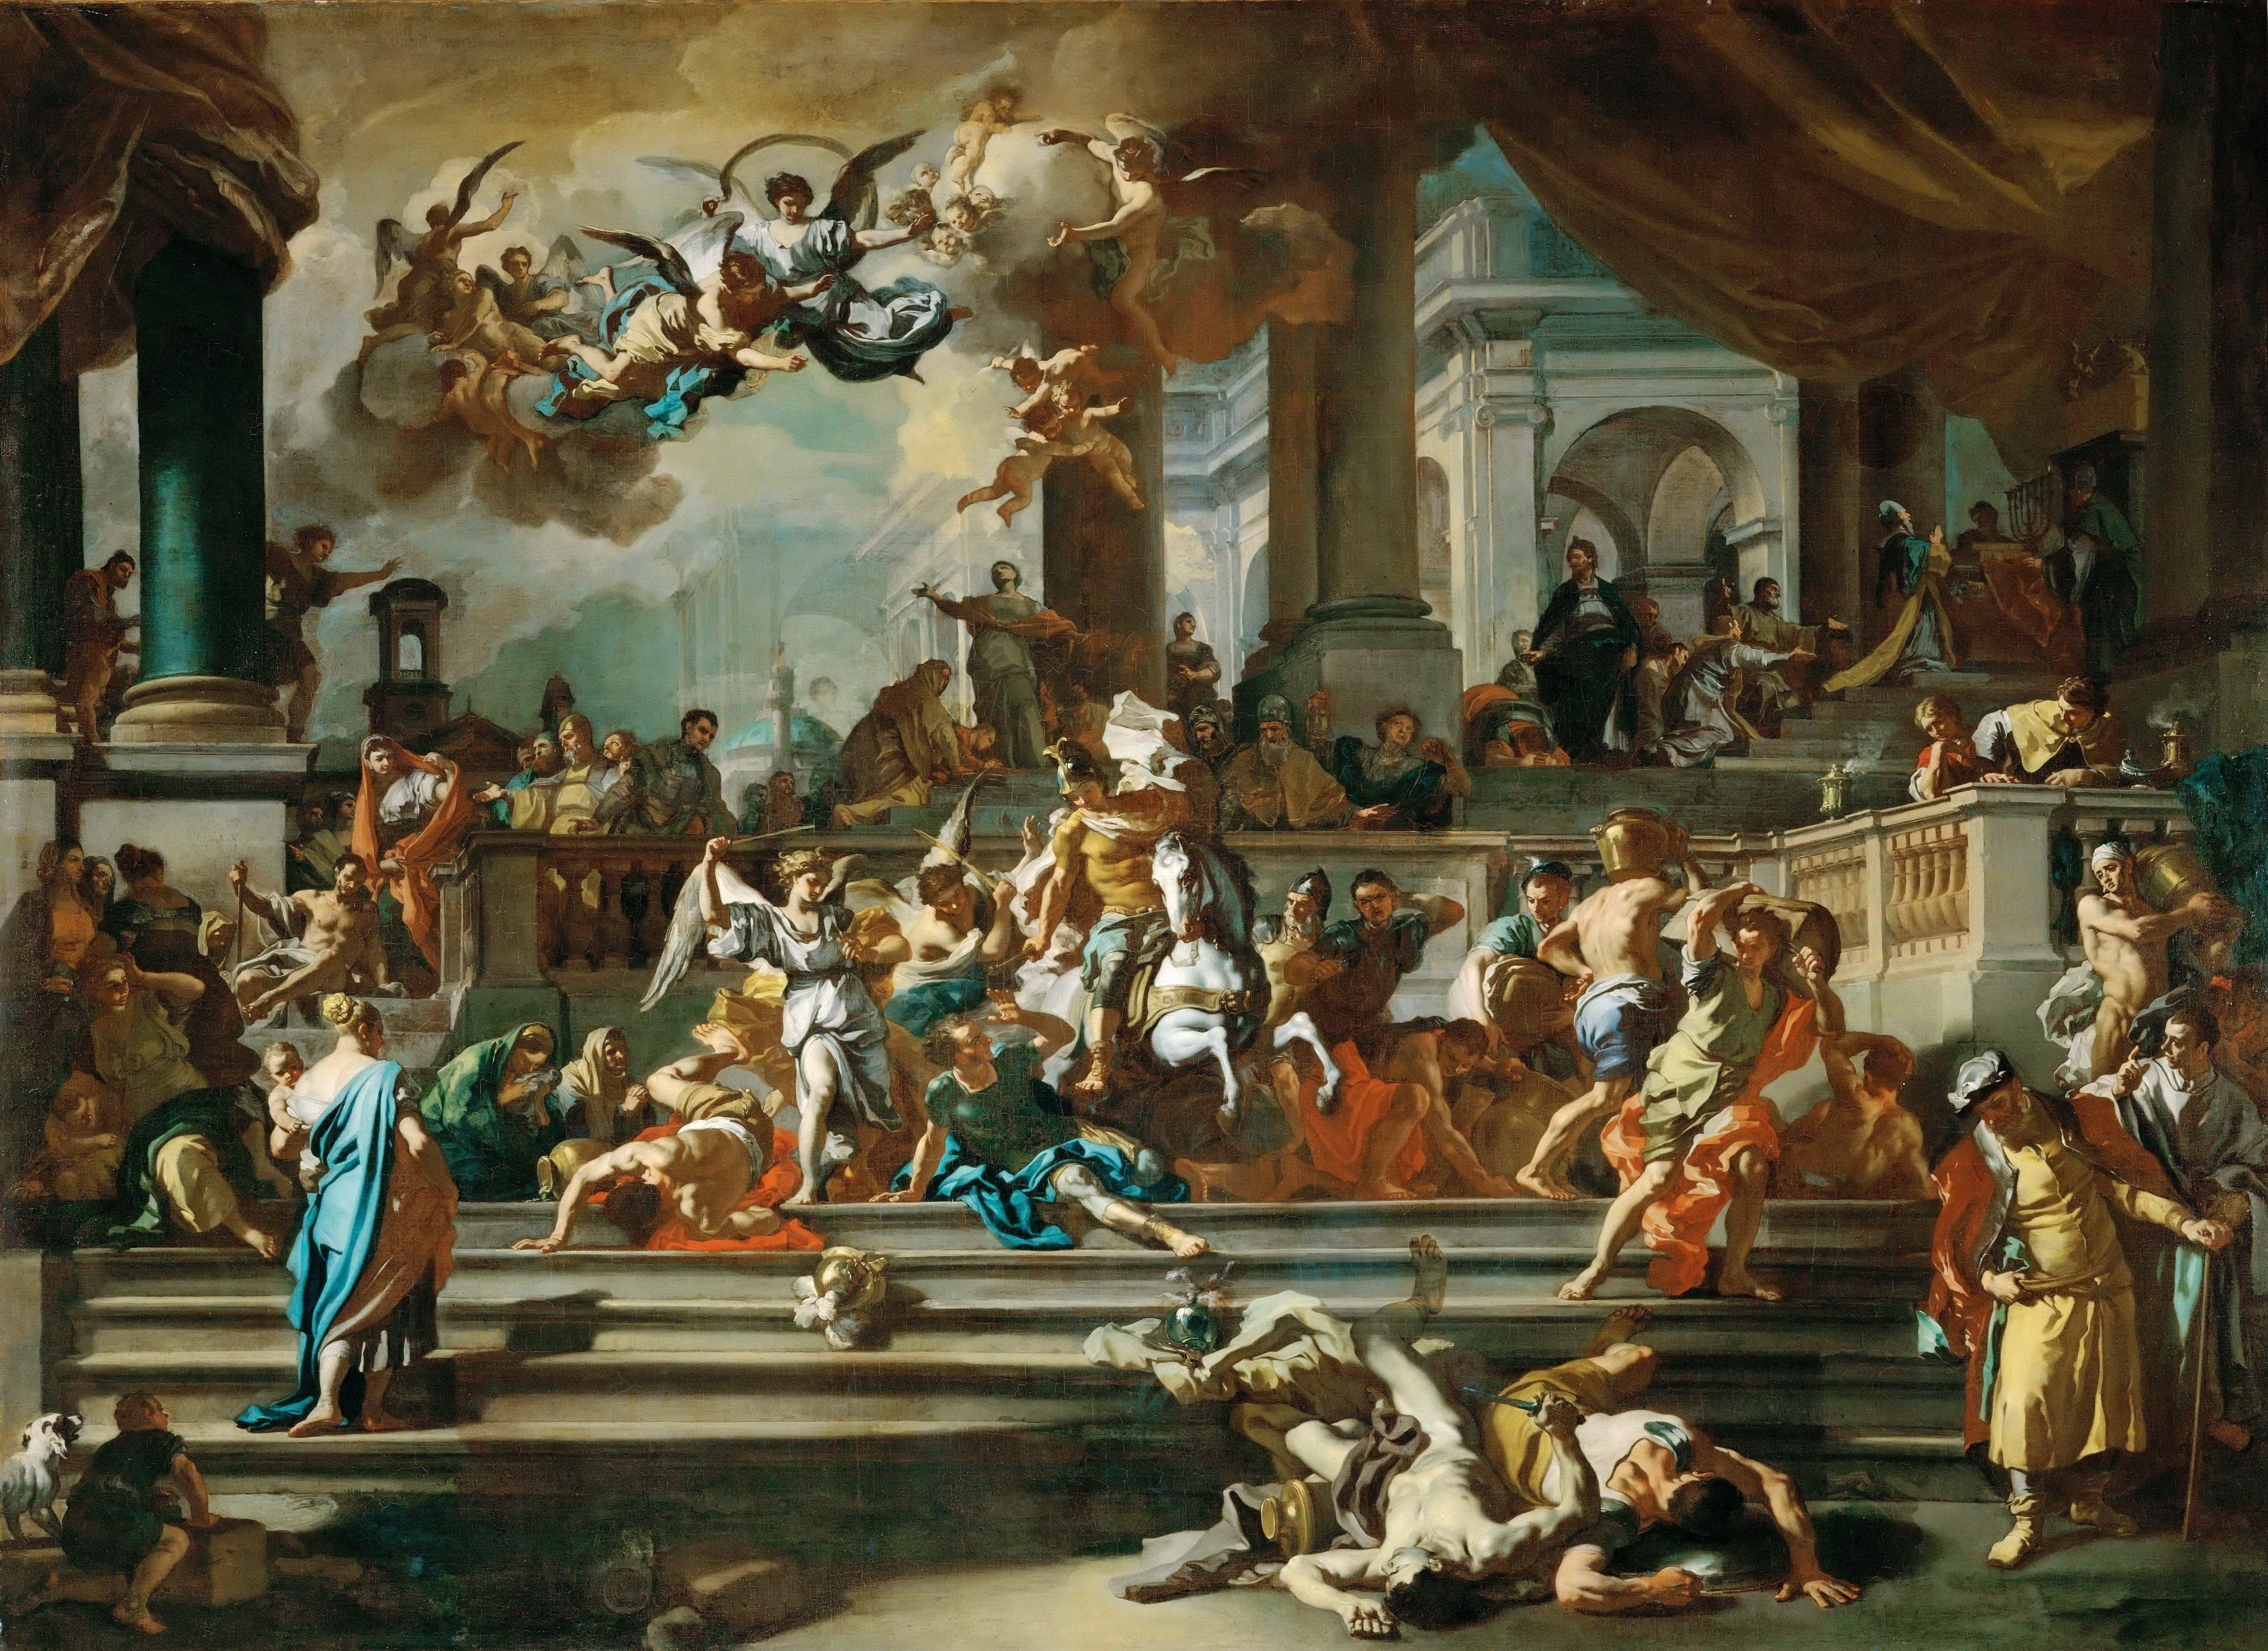 christian solimena wallpapers louvre paintings painting angel artwork battle religion temple angels thread expulsion eliodoro francesco hermon mount antiquity dreaming